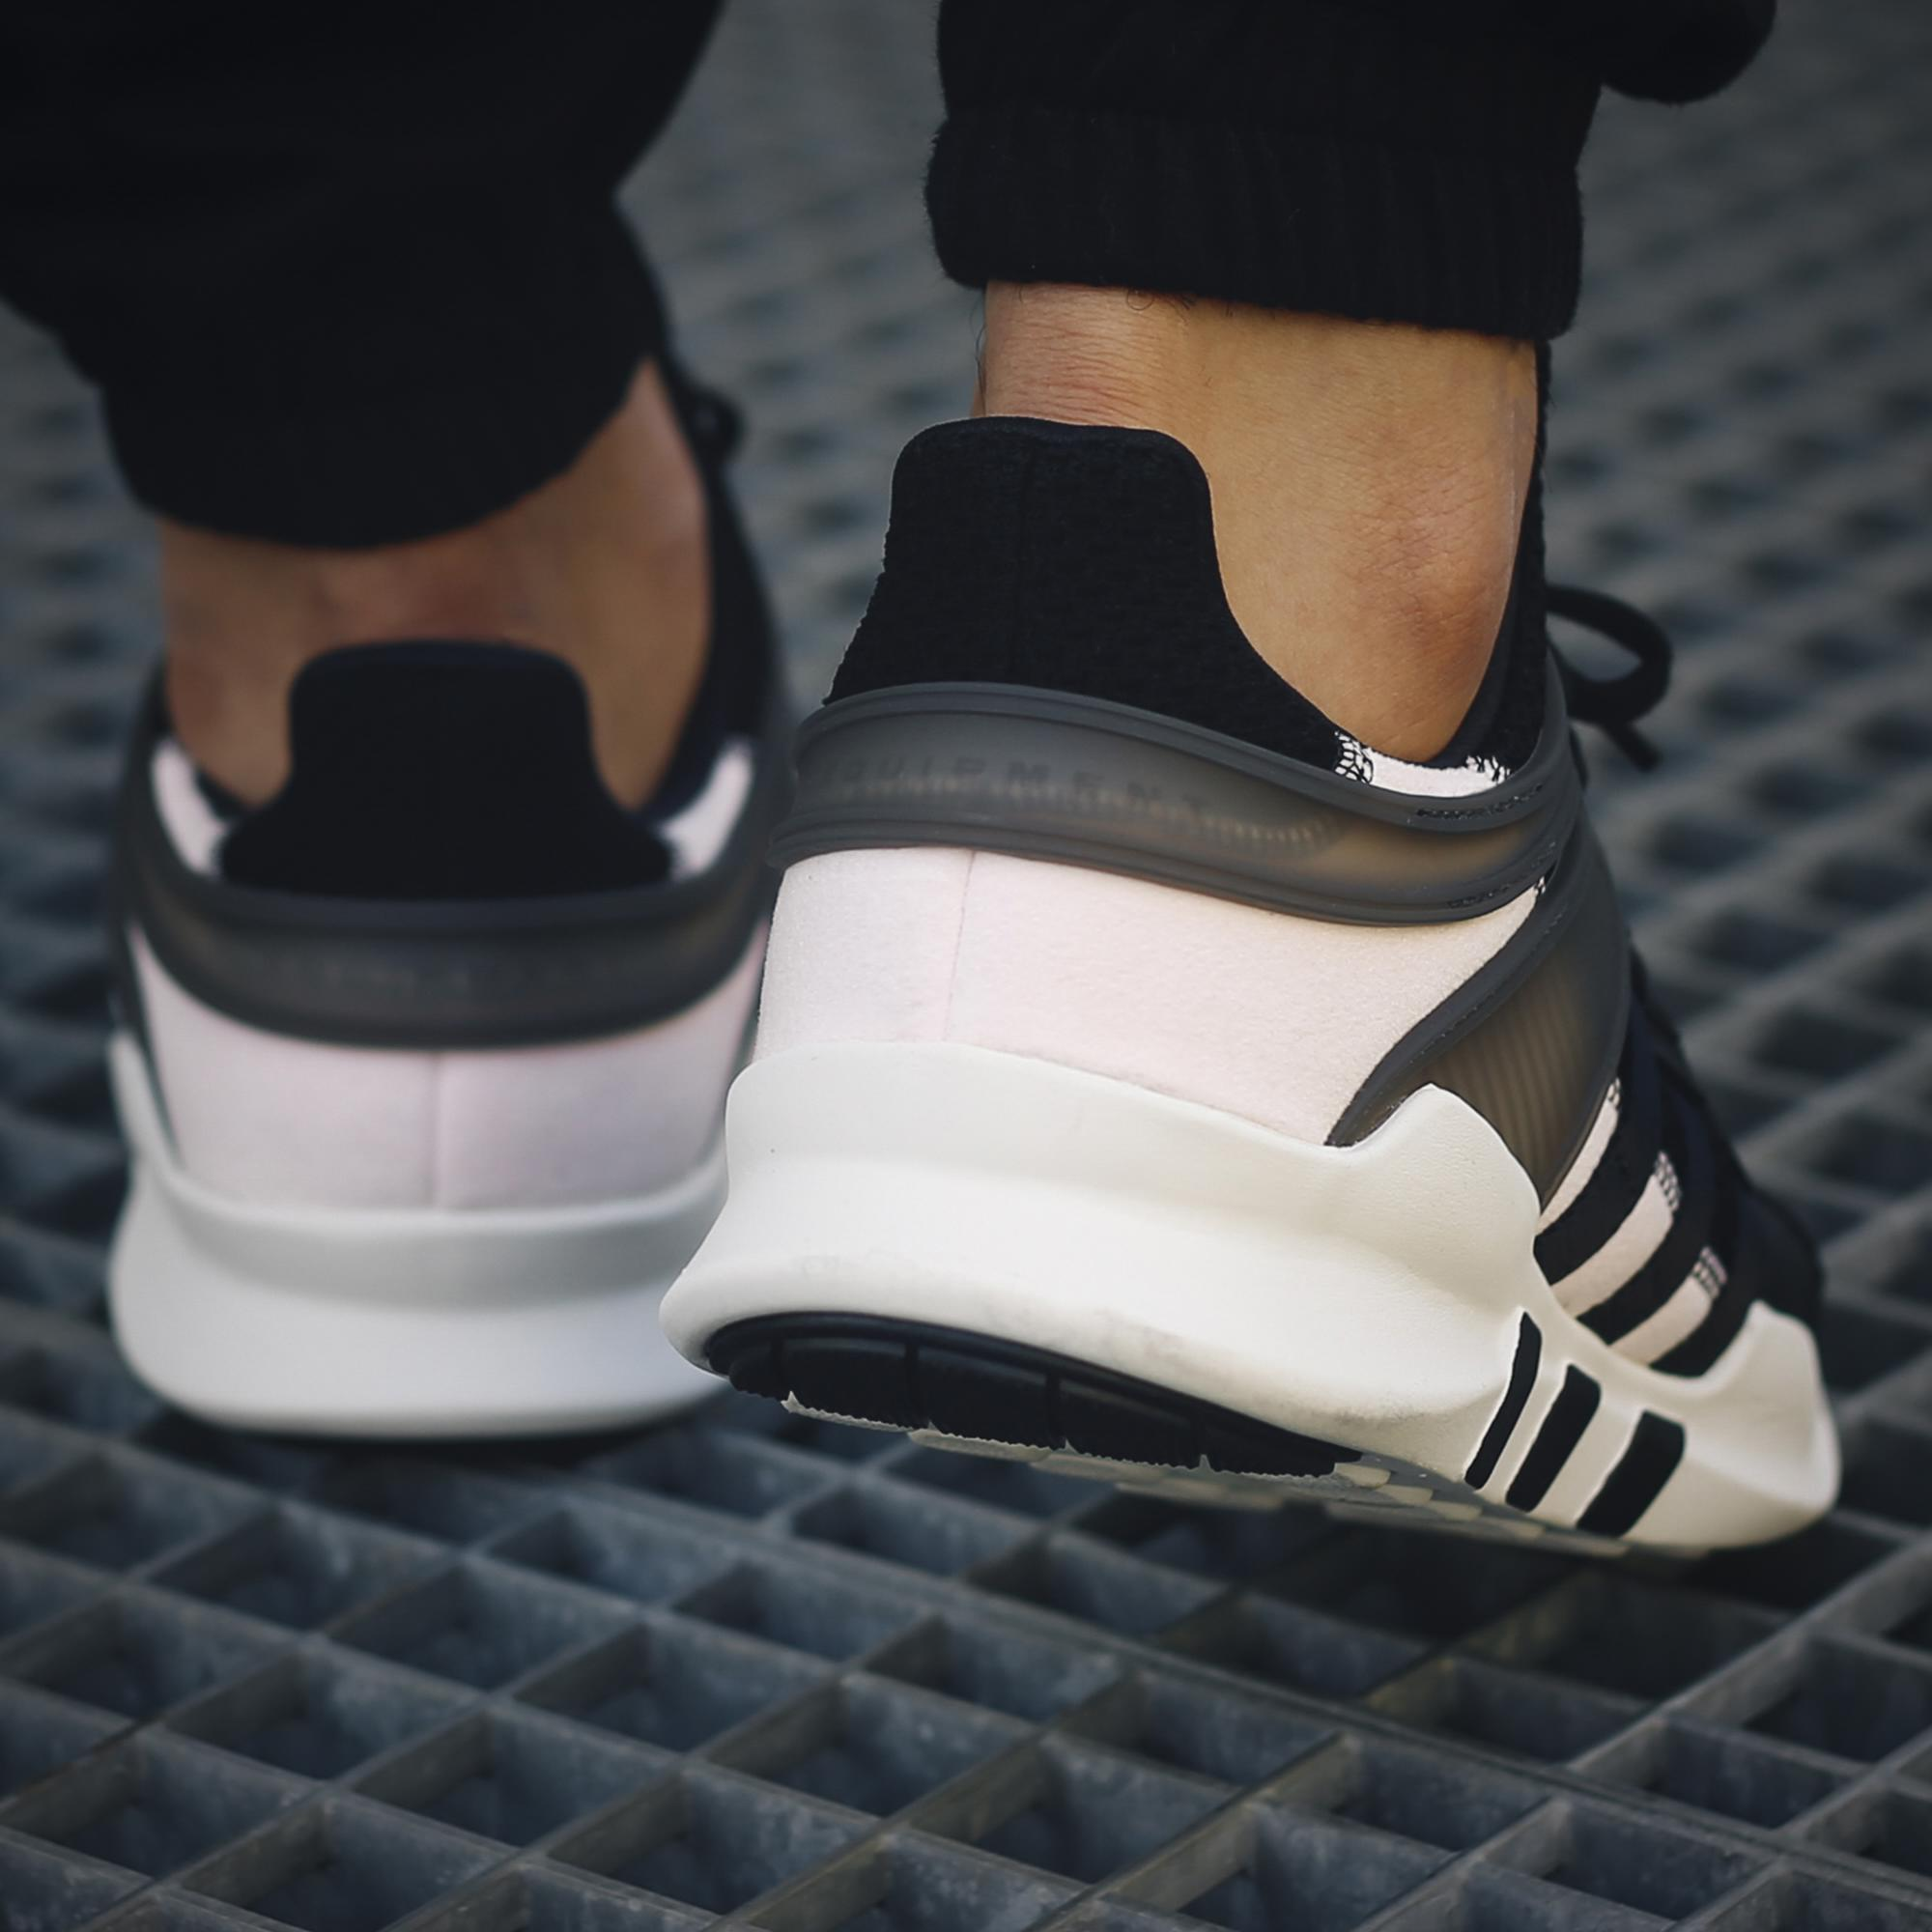 innovative design d1289 a30c7 Ladies, Have You Picked Up The adidas EQT Support ADV Clear ...